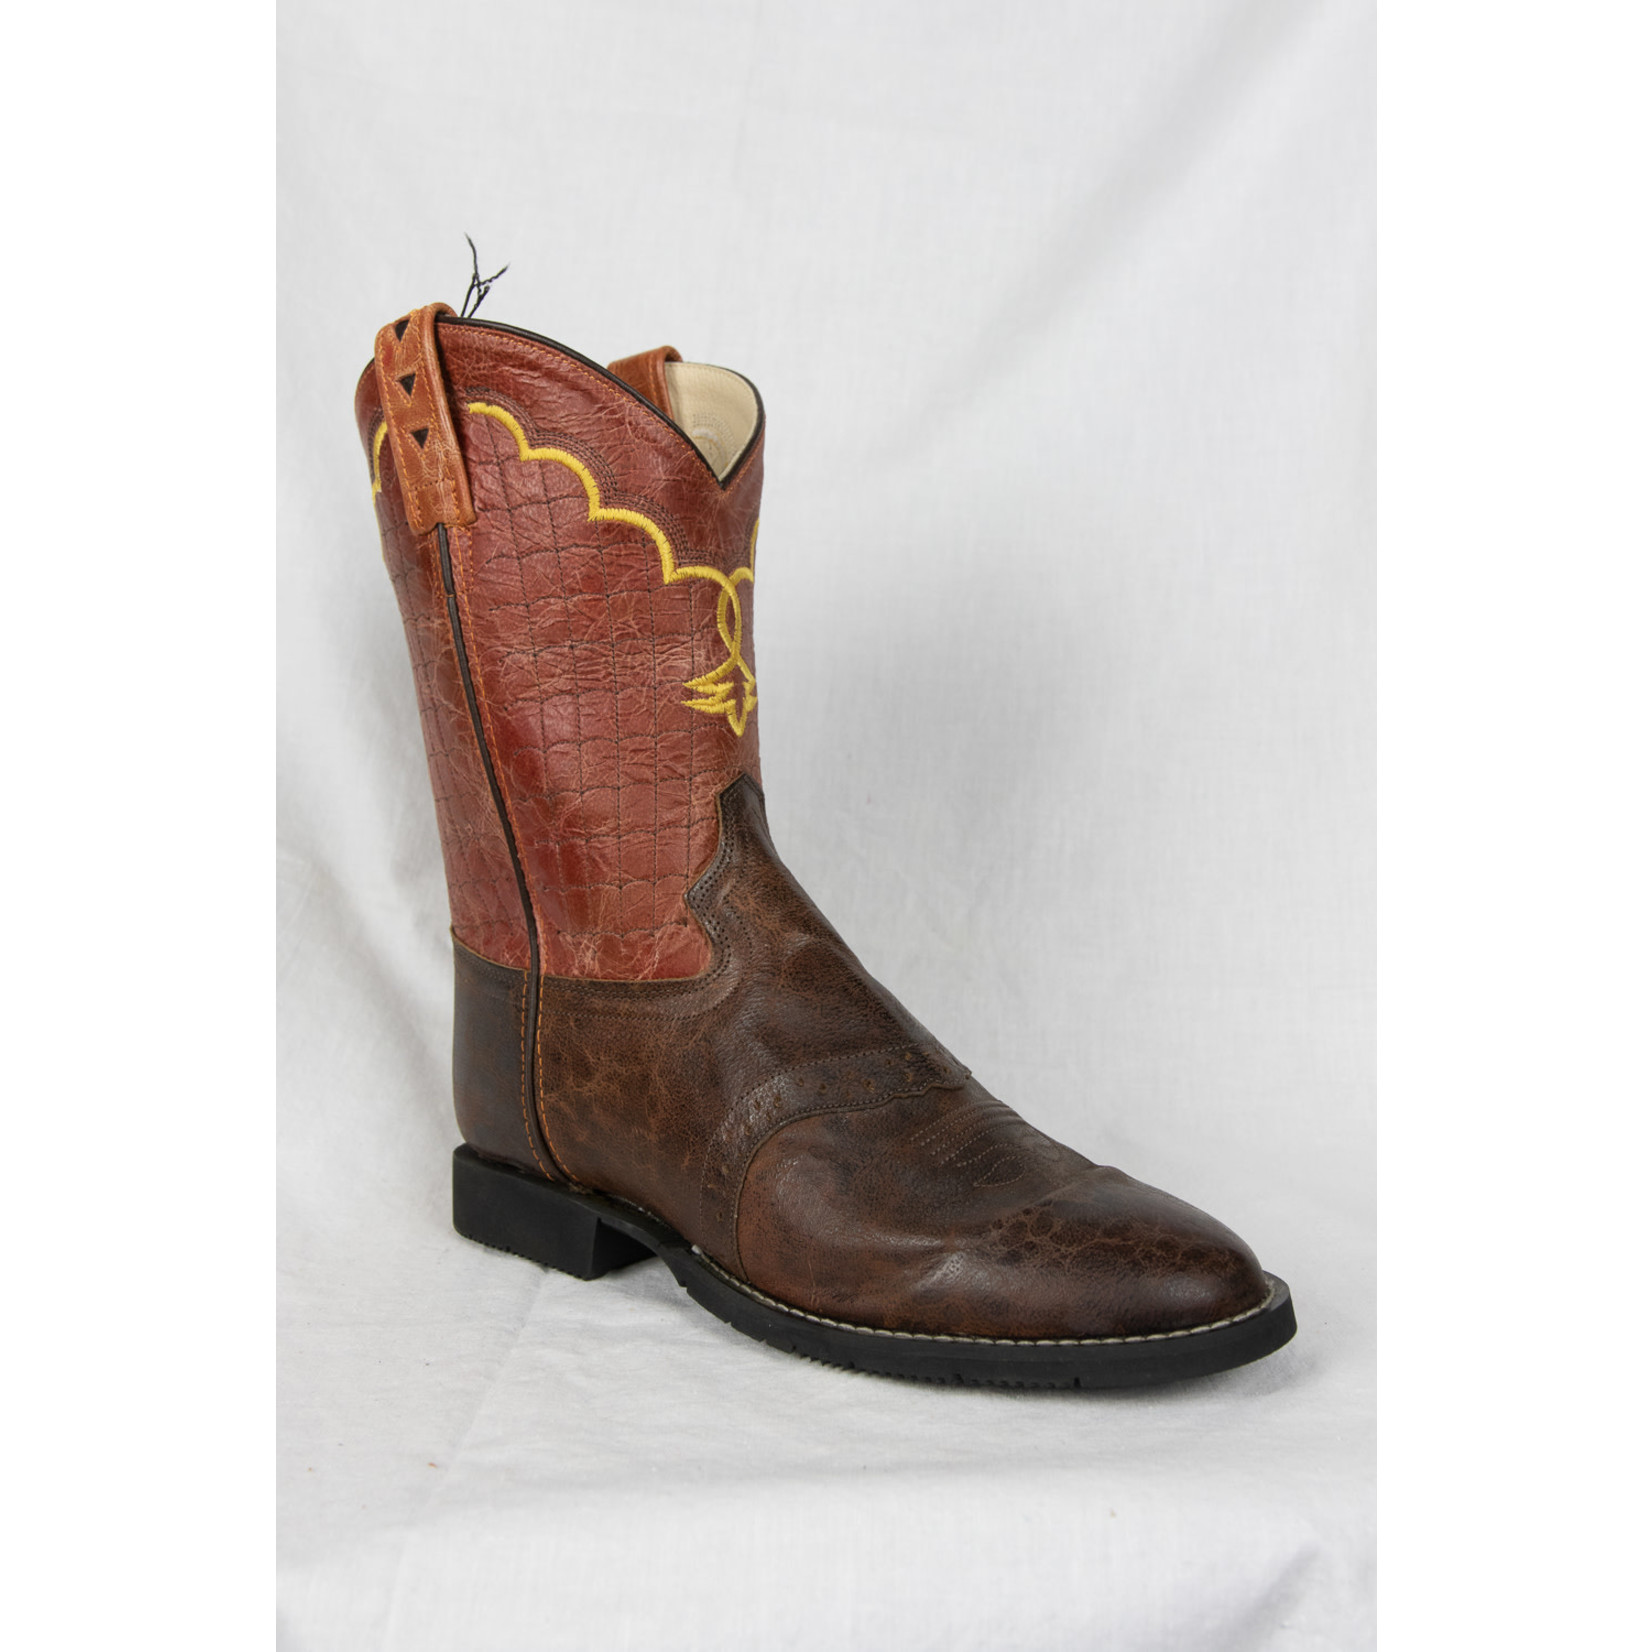 Old west Old West Youth Cowboy Boot CW2522Y D